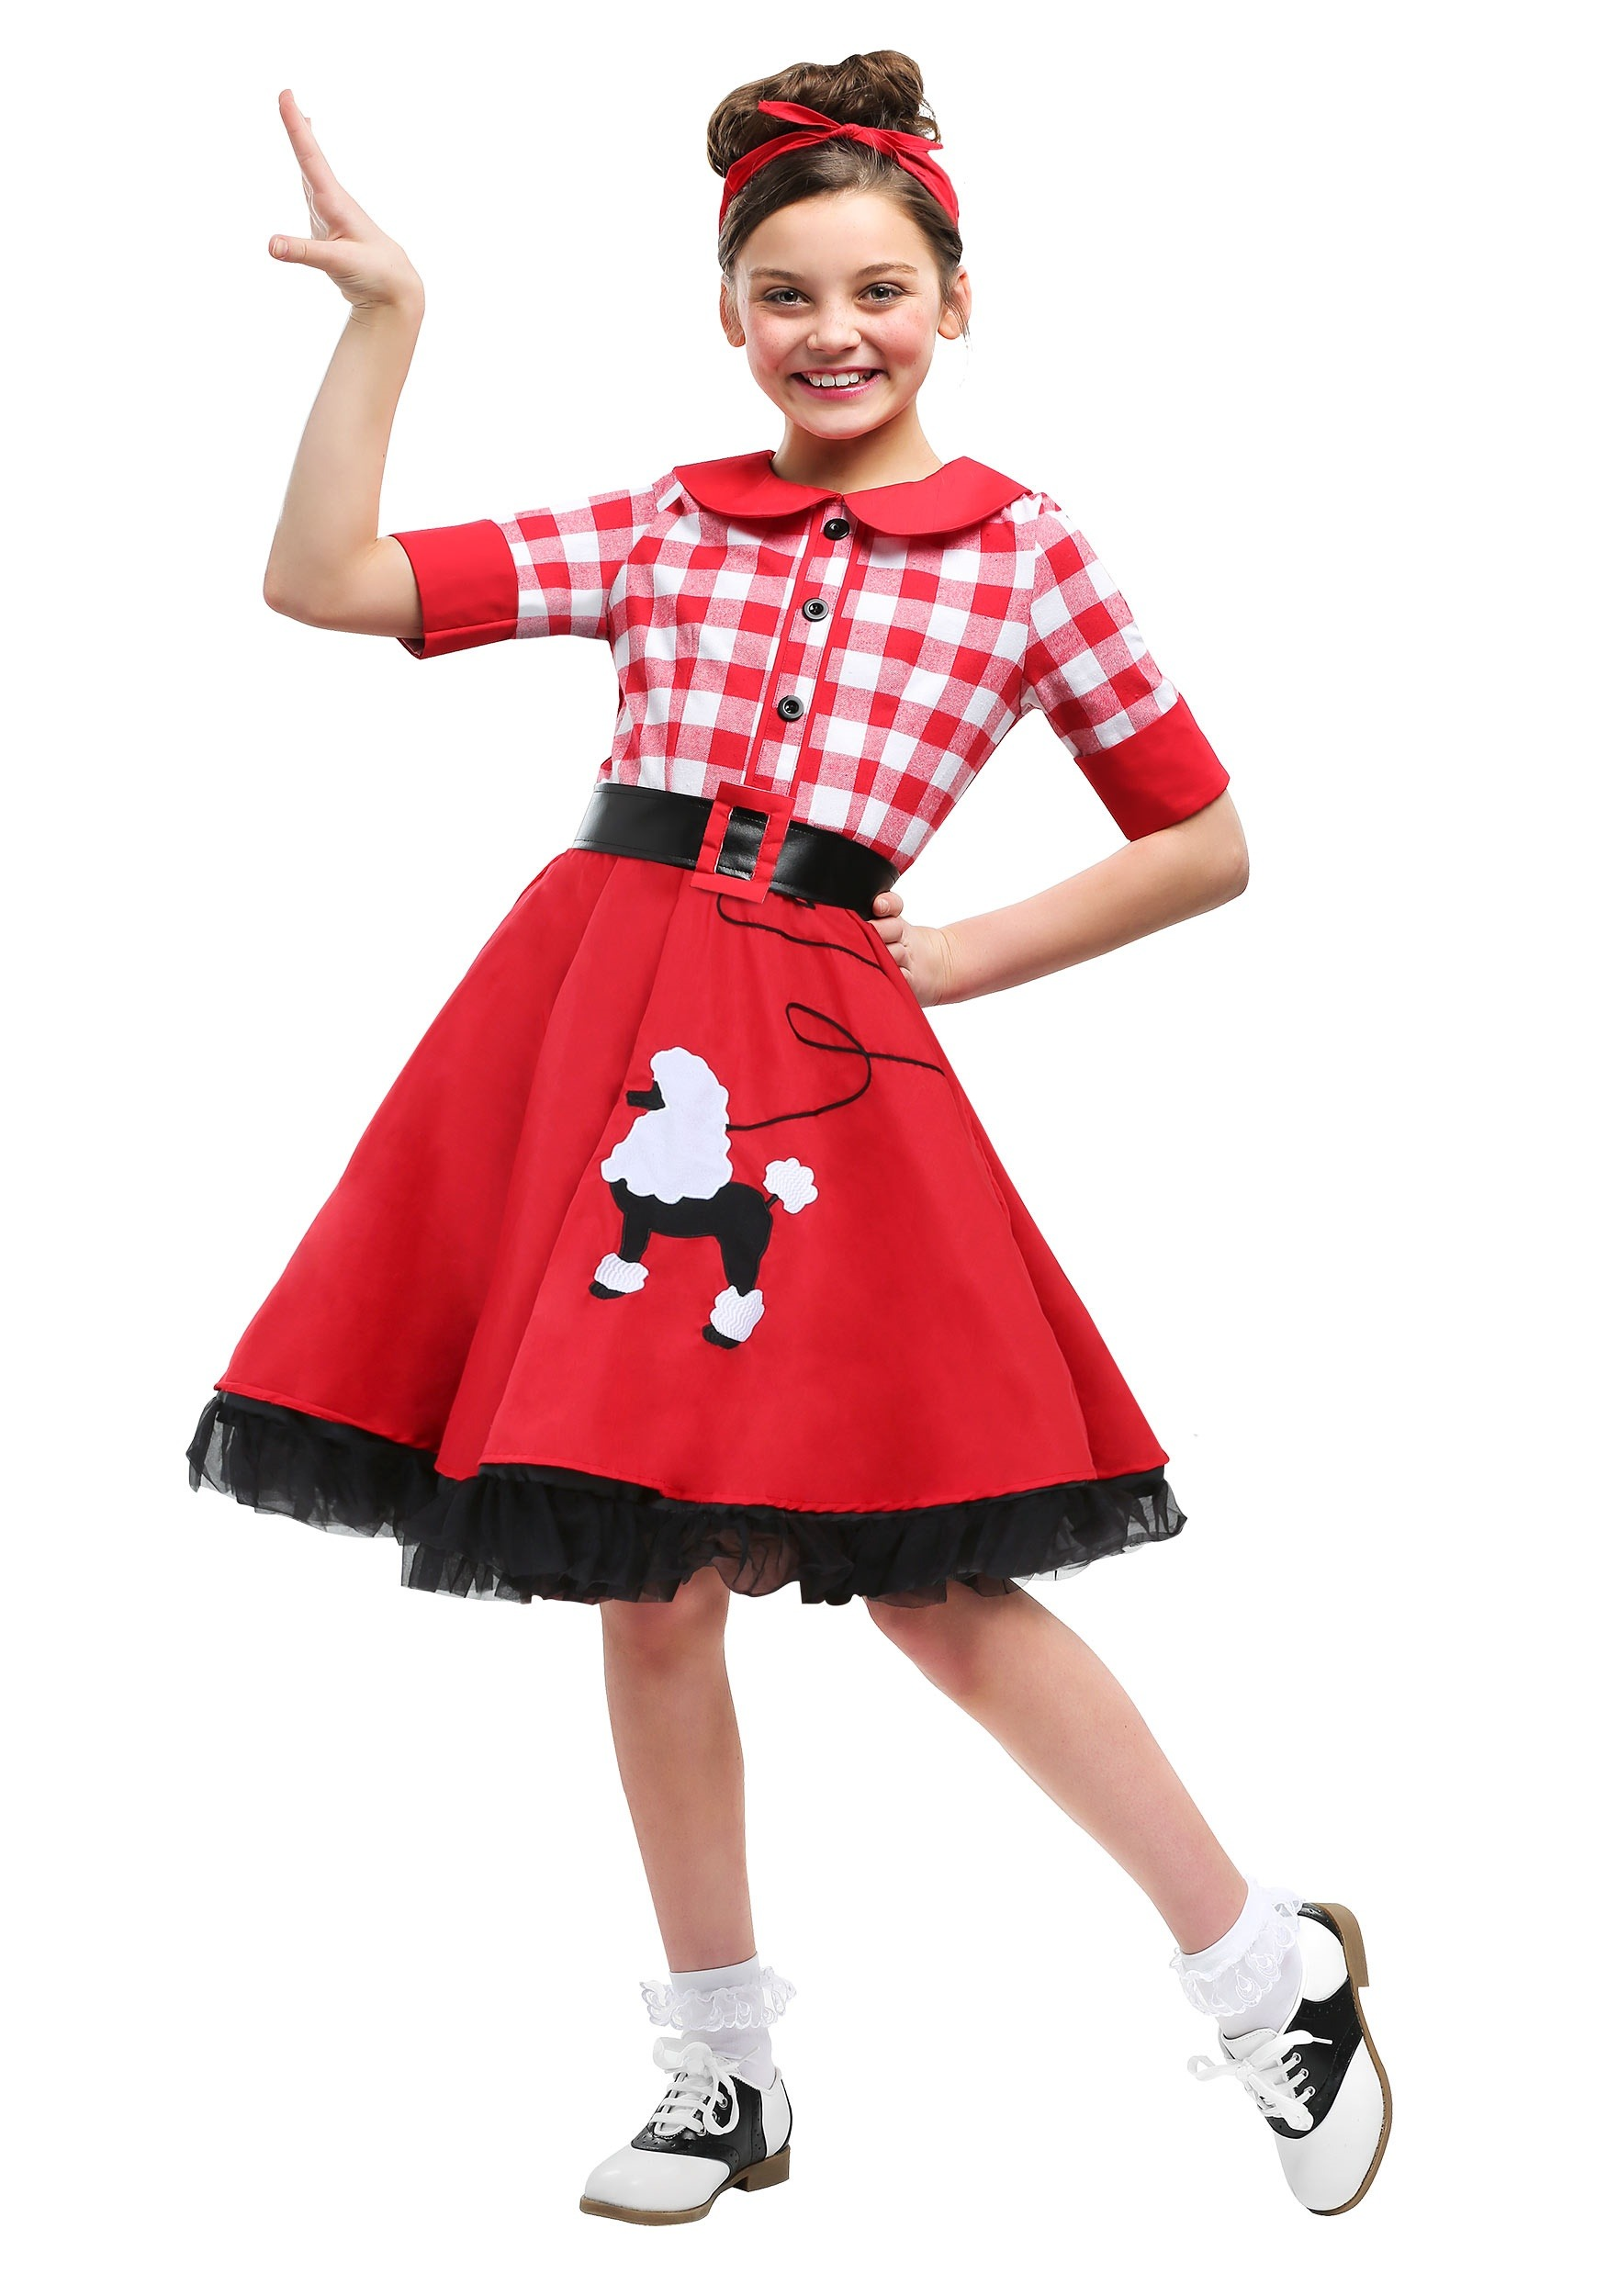 50 Halloween Hair And Makeup Tutorials: 50s Darling Costume For Girls